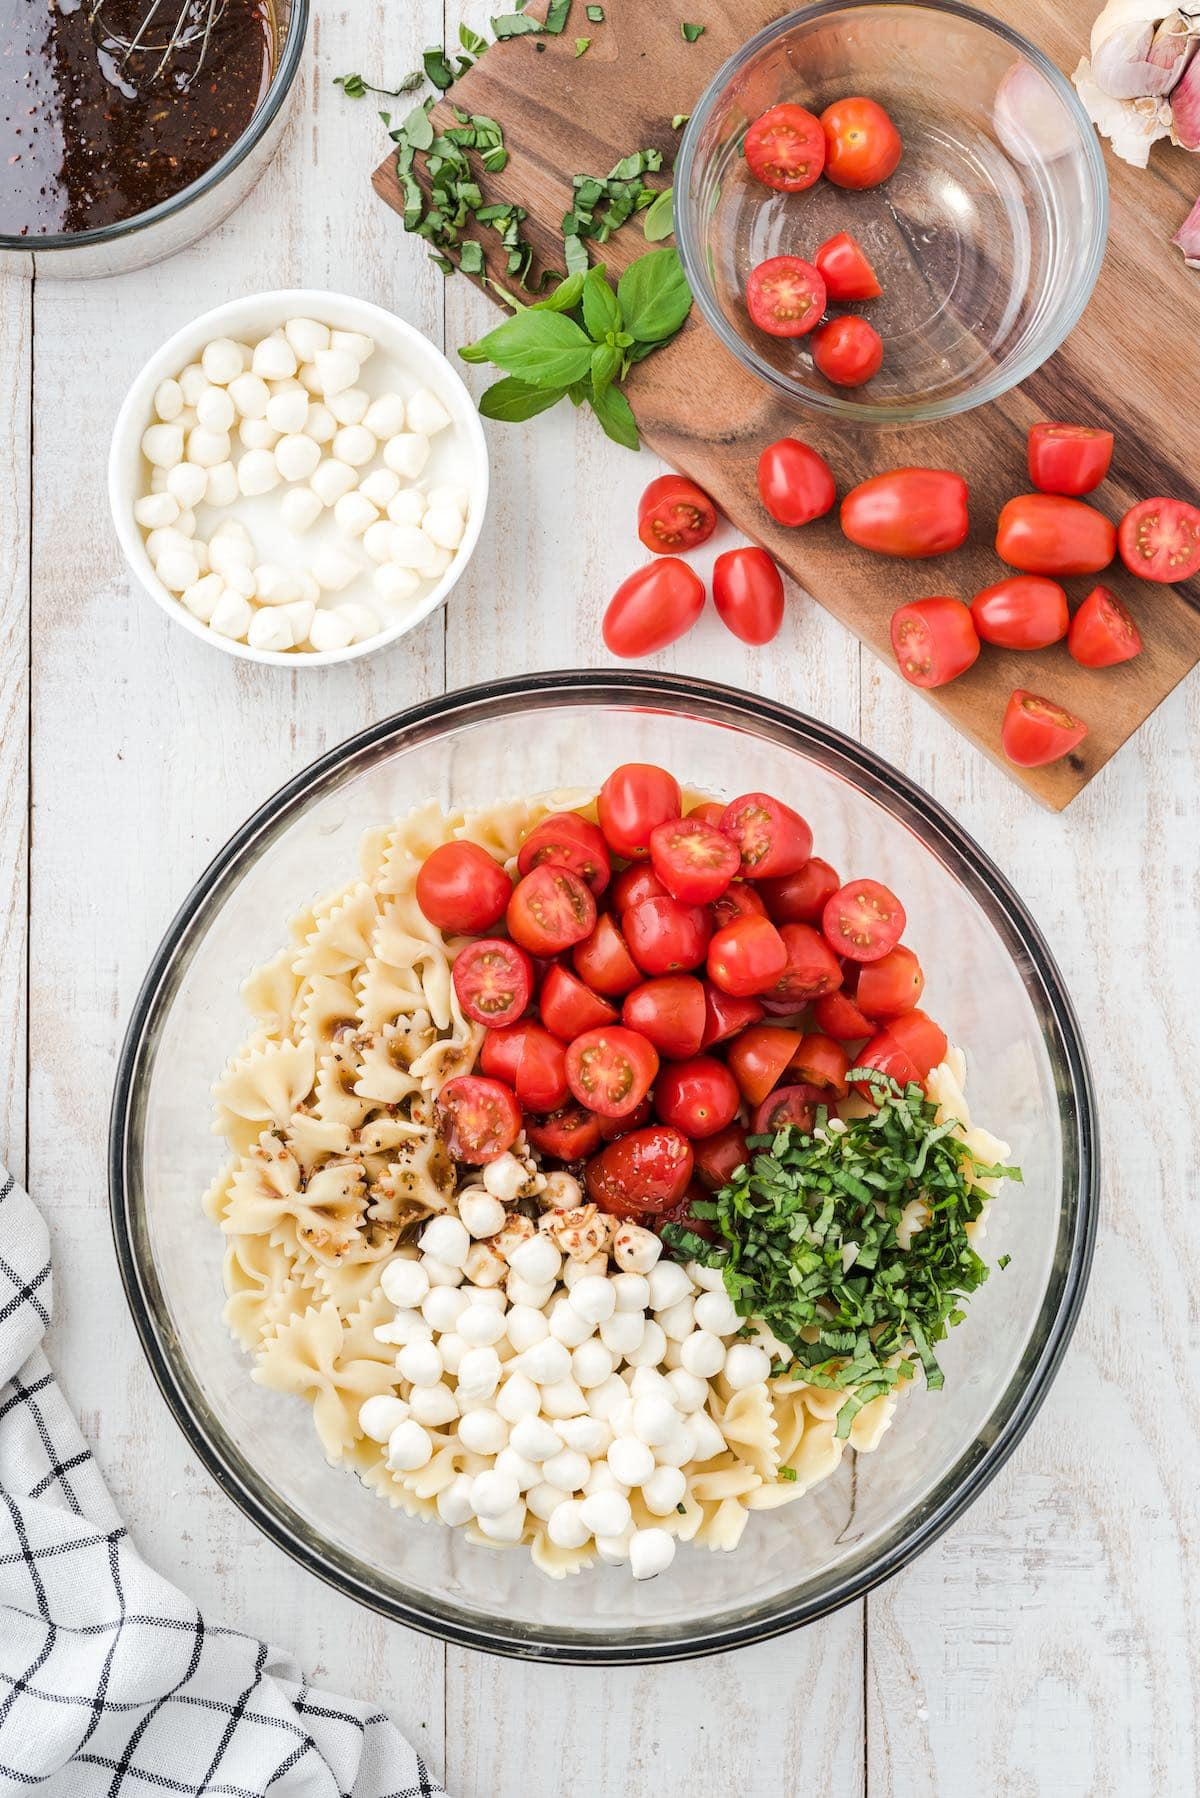 pasta mixed with halved grape tomatoes, mozzarella pearls, fresh chopped basil in a bowl